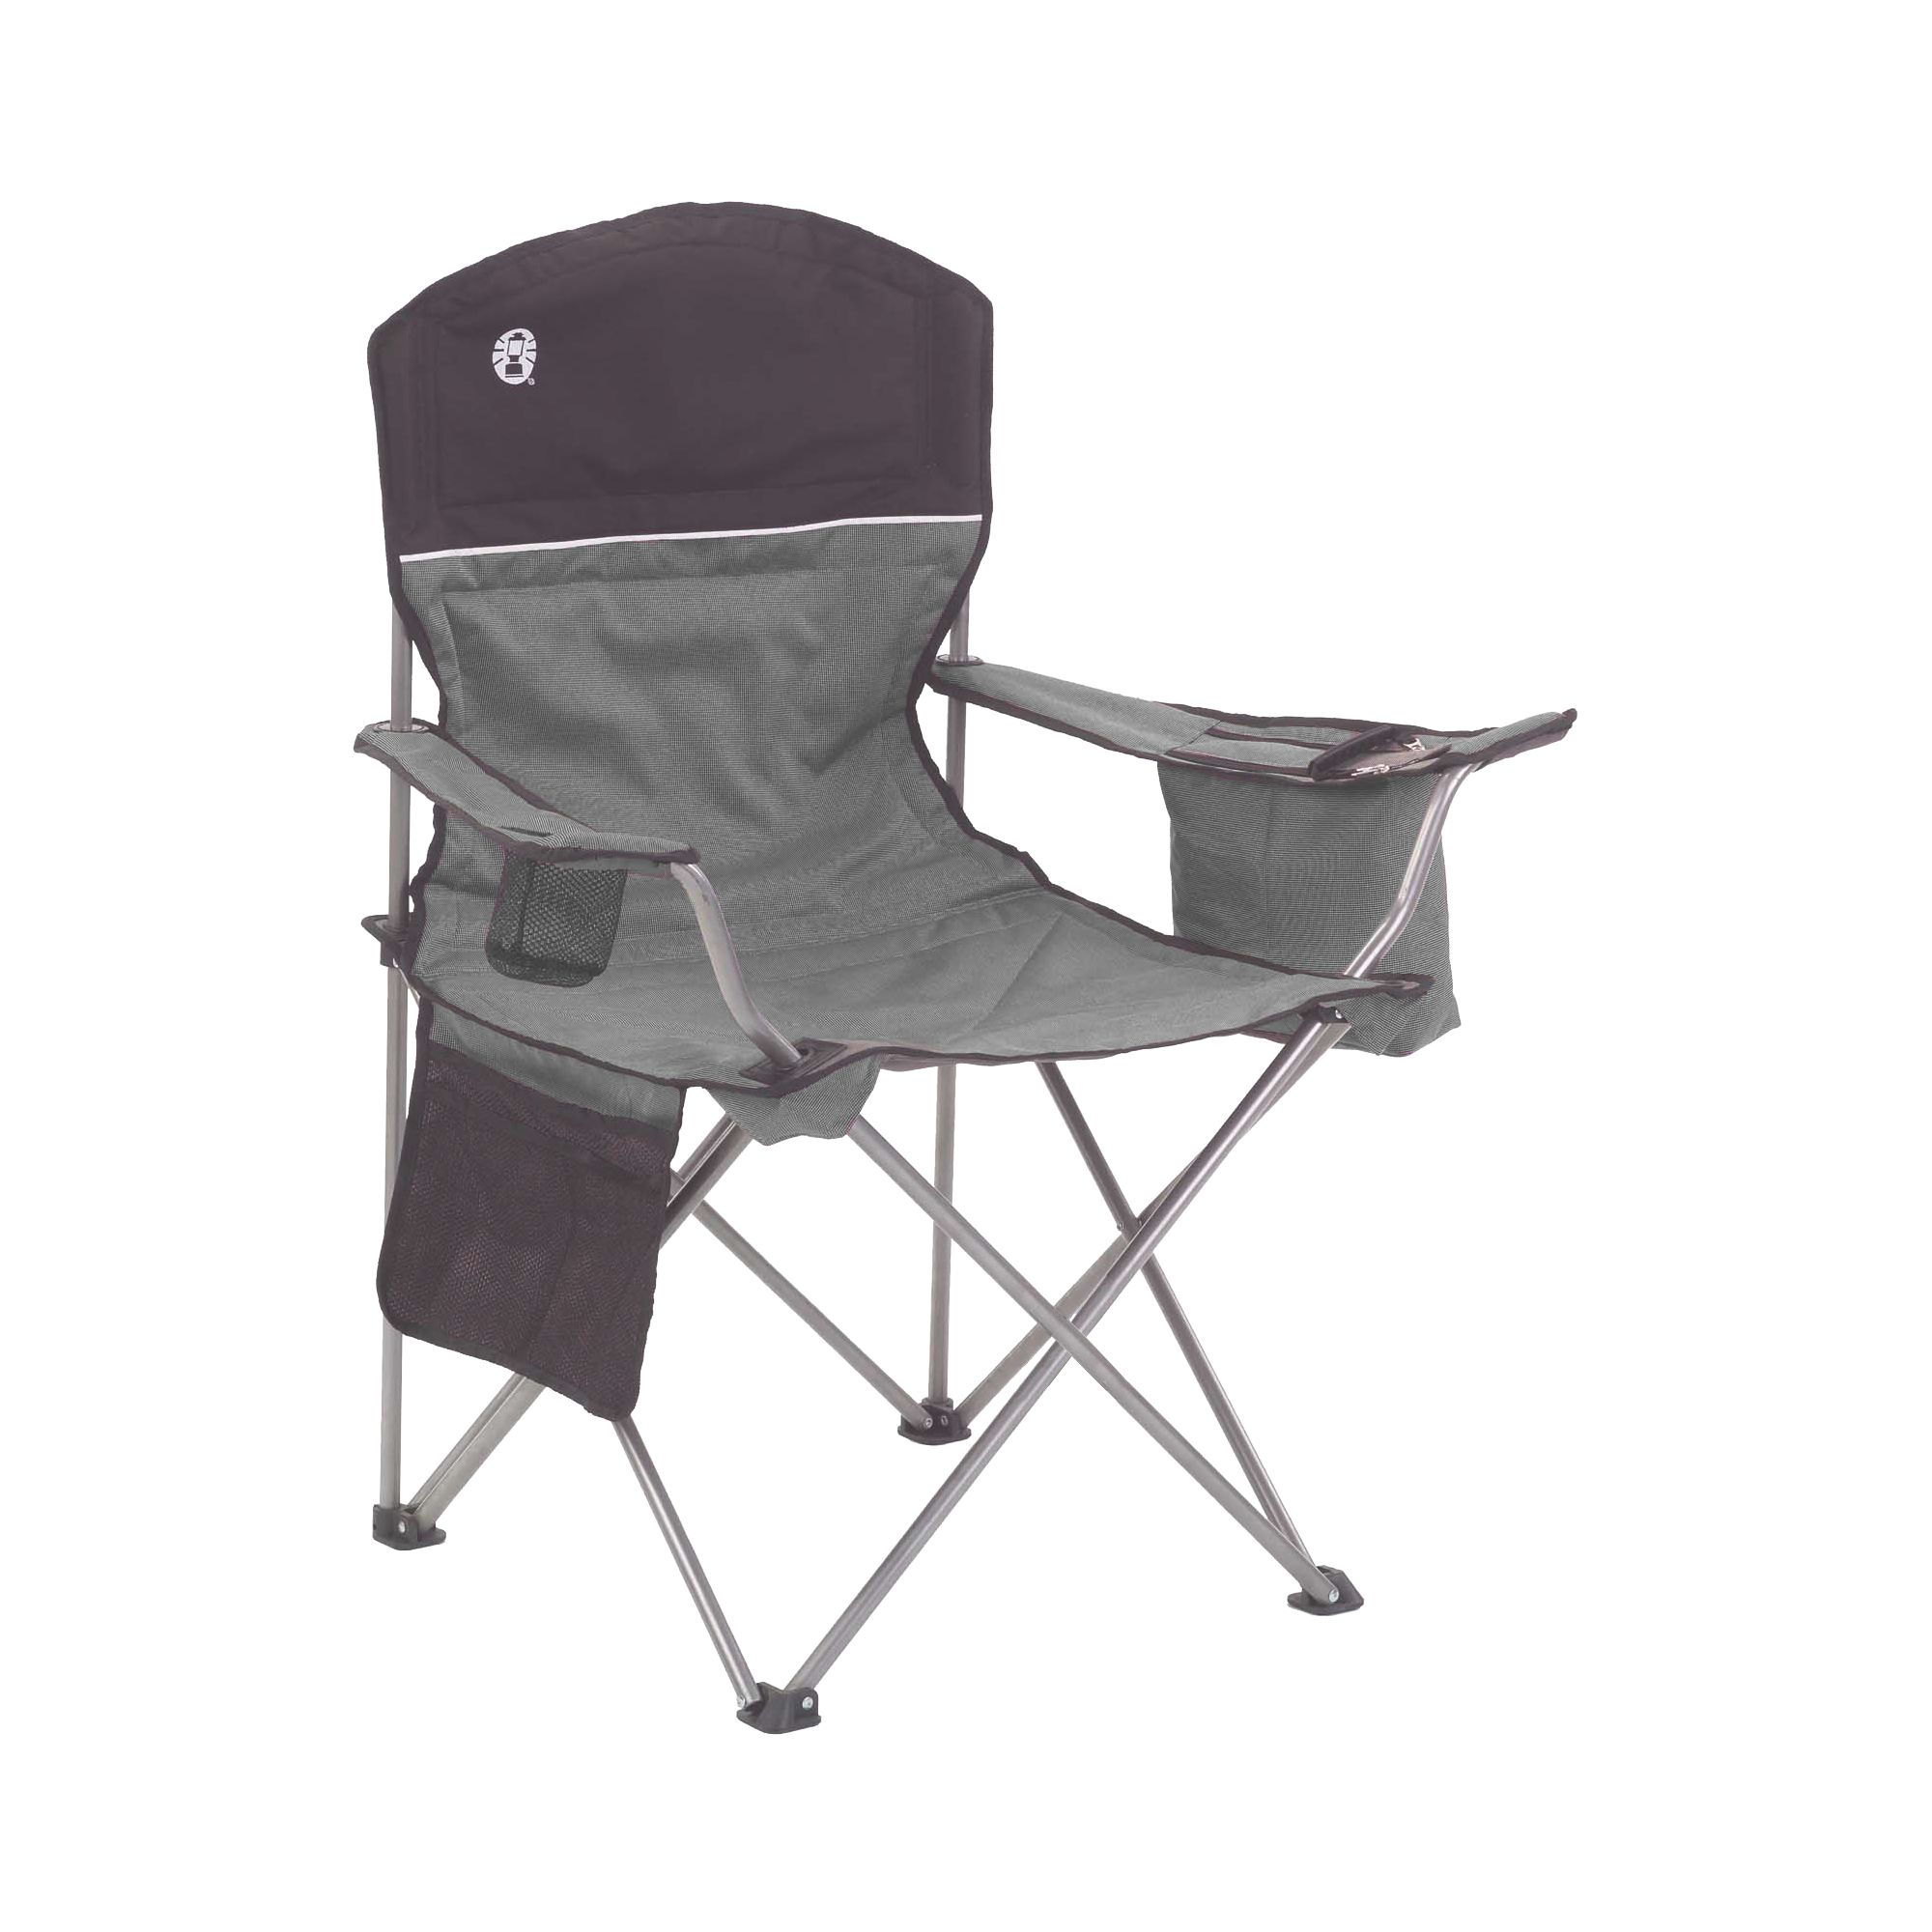 Coleman camp chairs - Coleman Oversized Quad Chair With Cooler